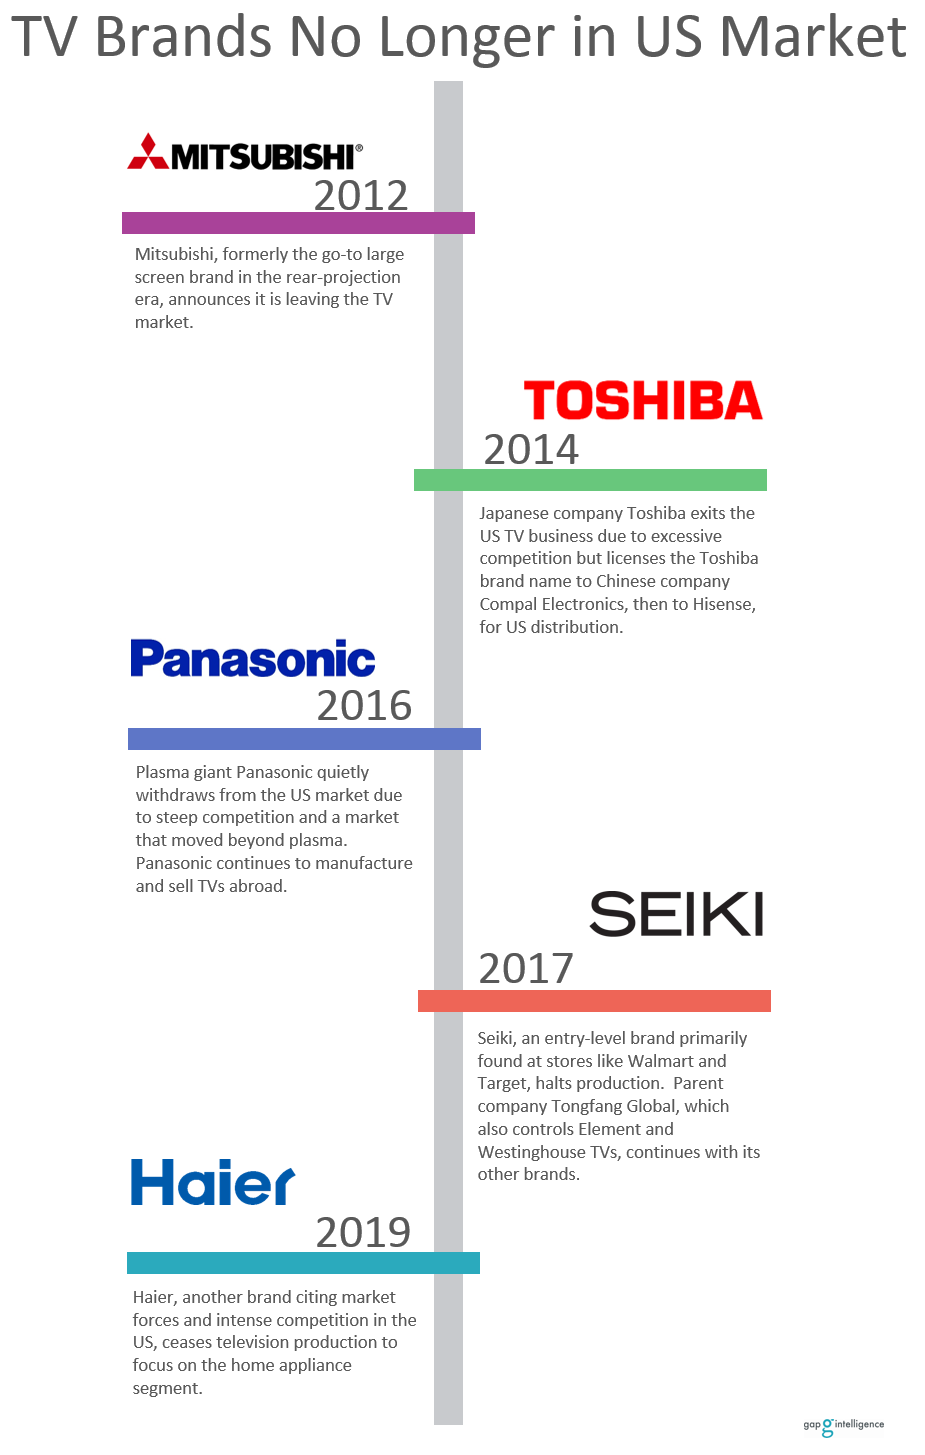 Timeline showing five TV brands no longer on the market